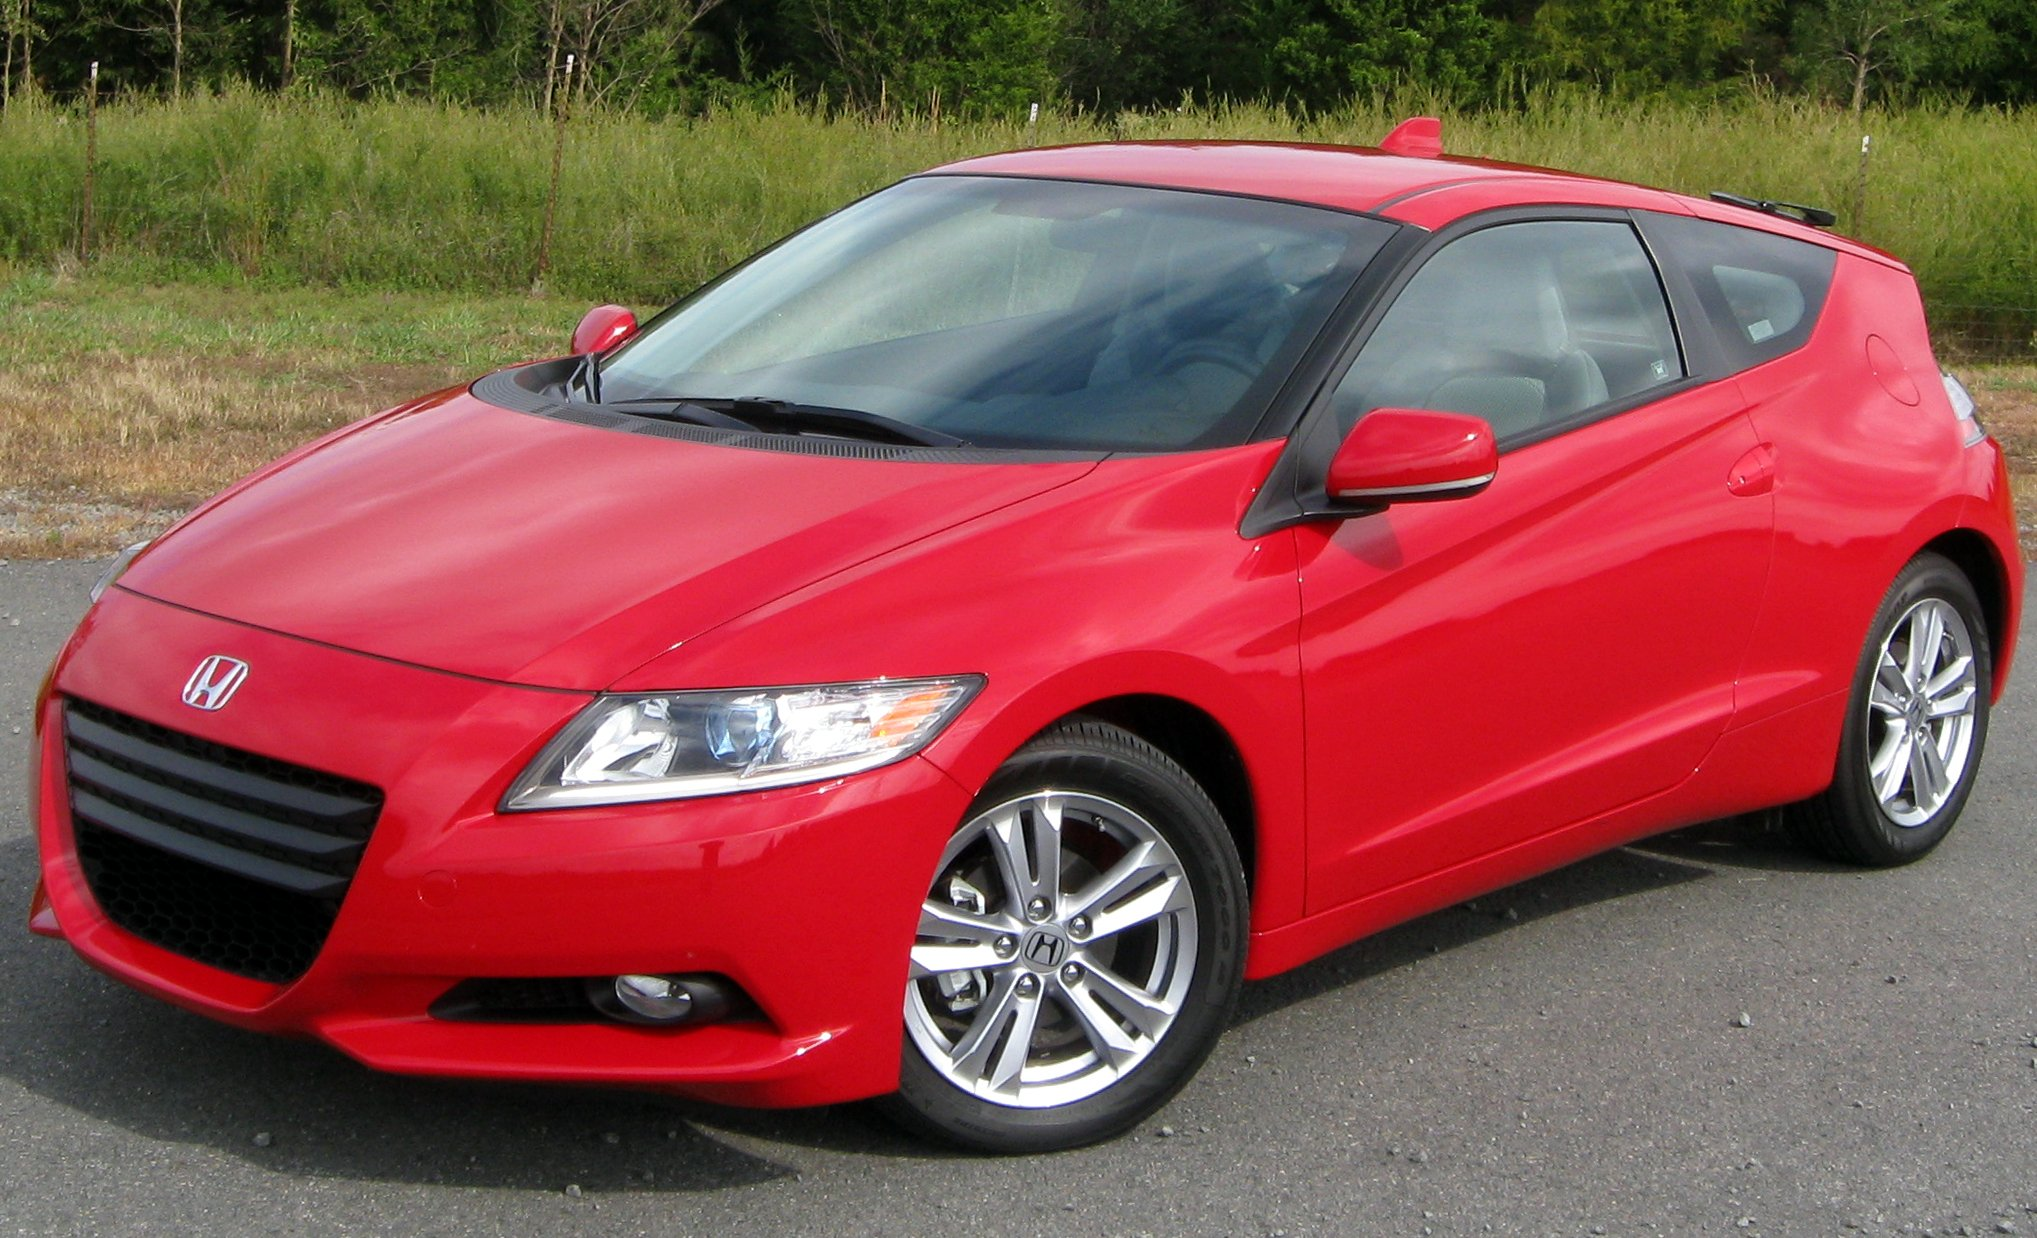 Pictures of honda cr-z